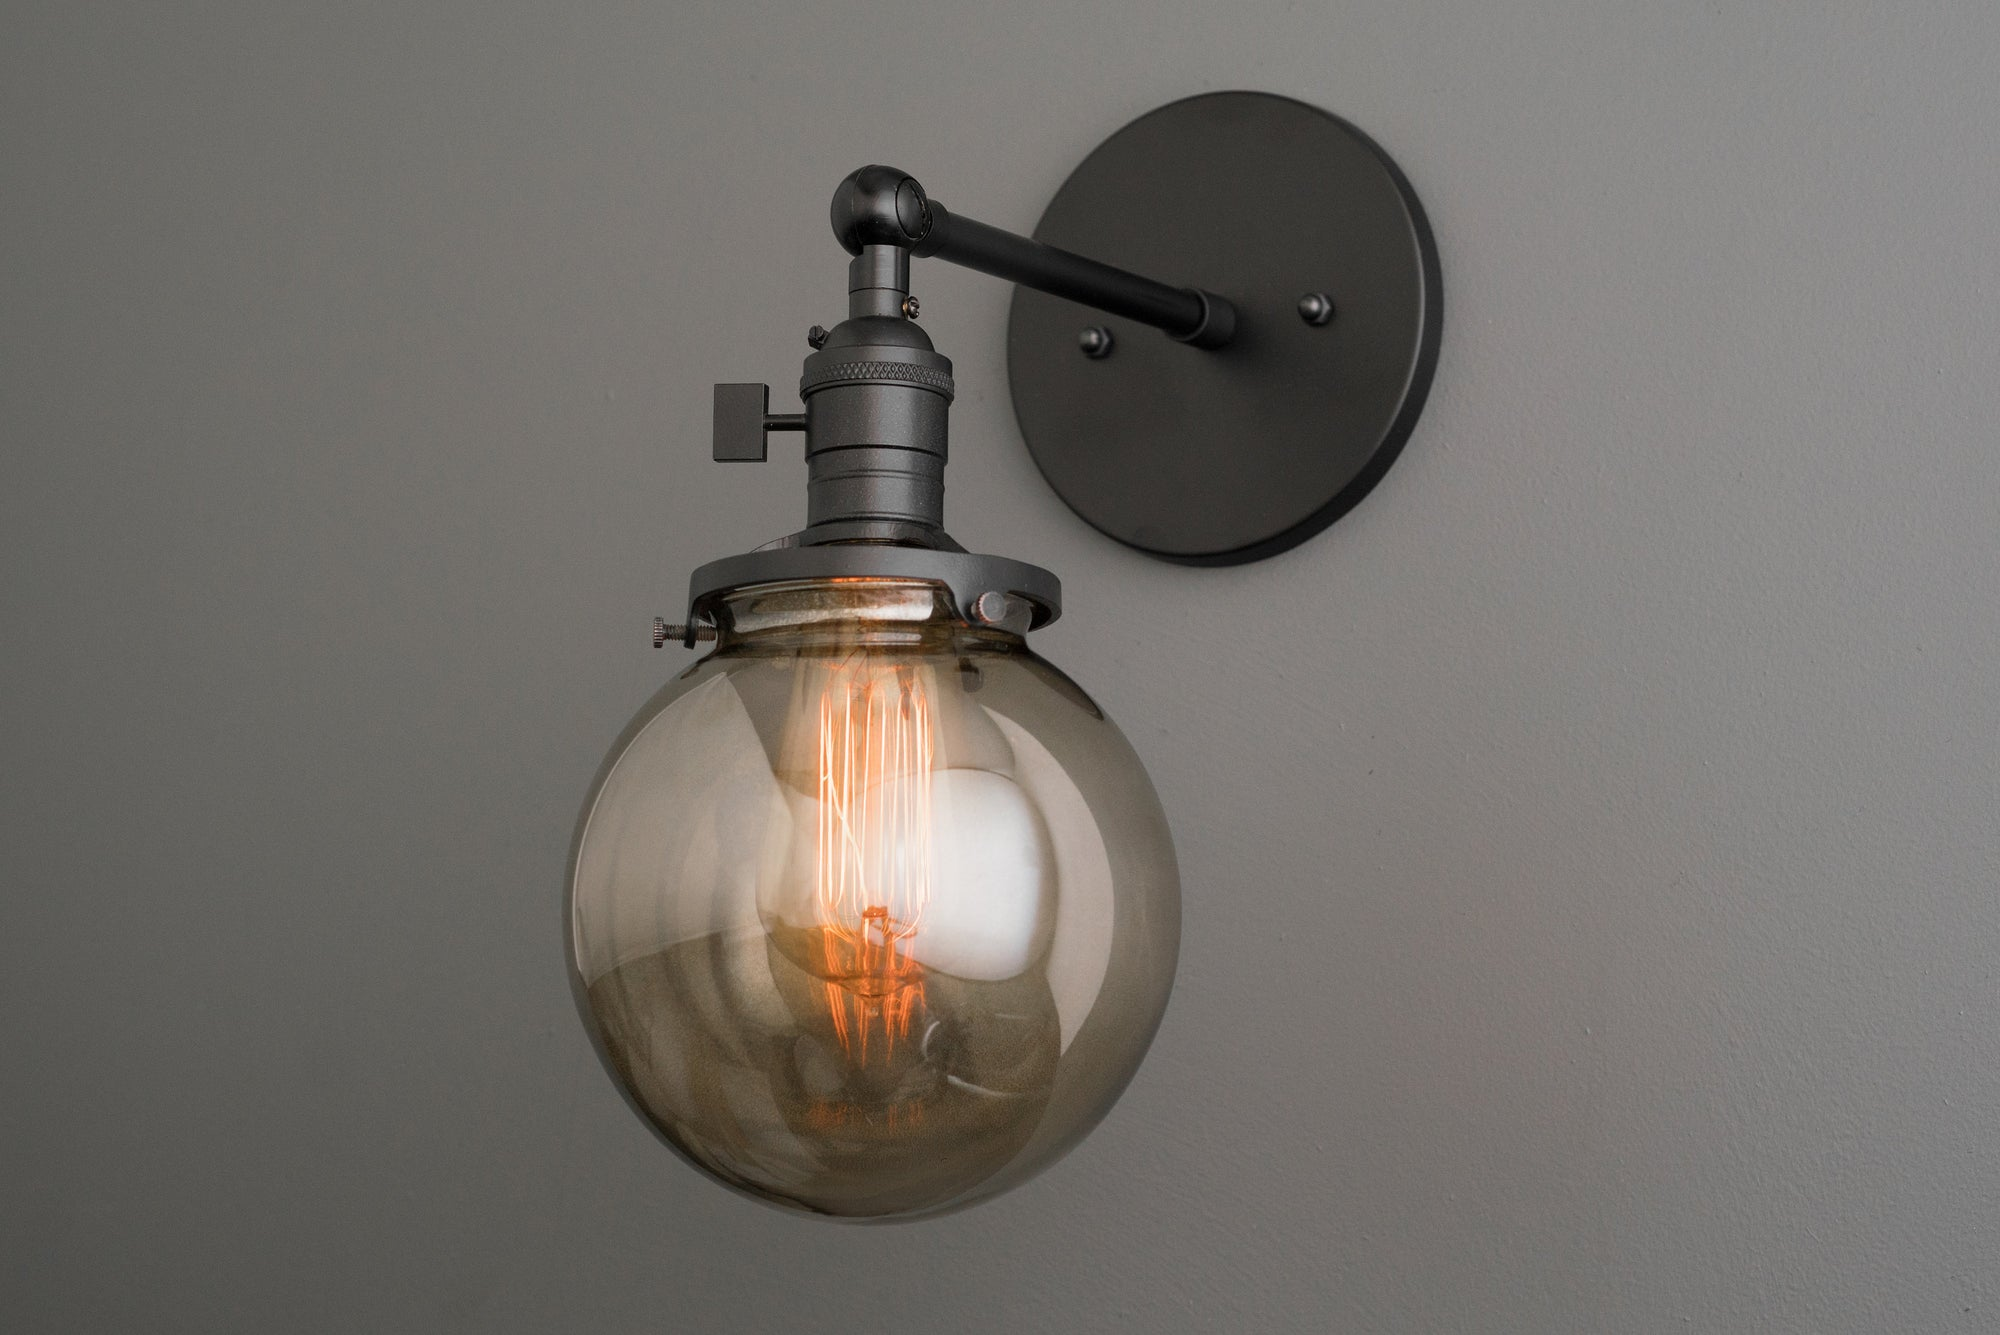 cheap for discount fcac3 5541b Sconce Light - Smoked Globe Light - Globe Wall Light - Lighting Fixtures -  Industrial Bathroom - Interior Wall Sconce - Farmhouse Lighting